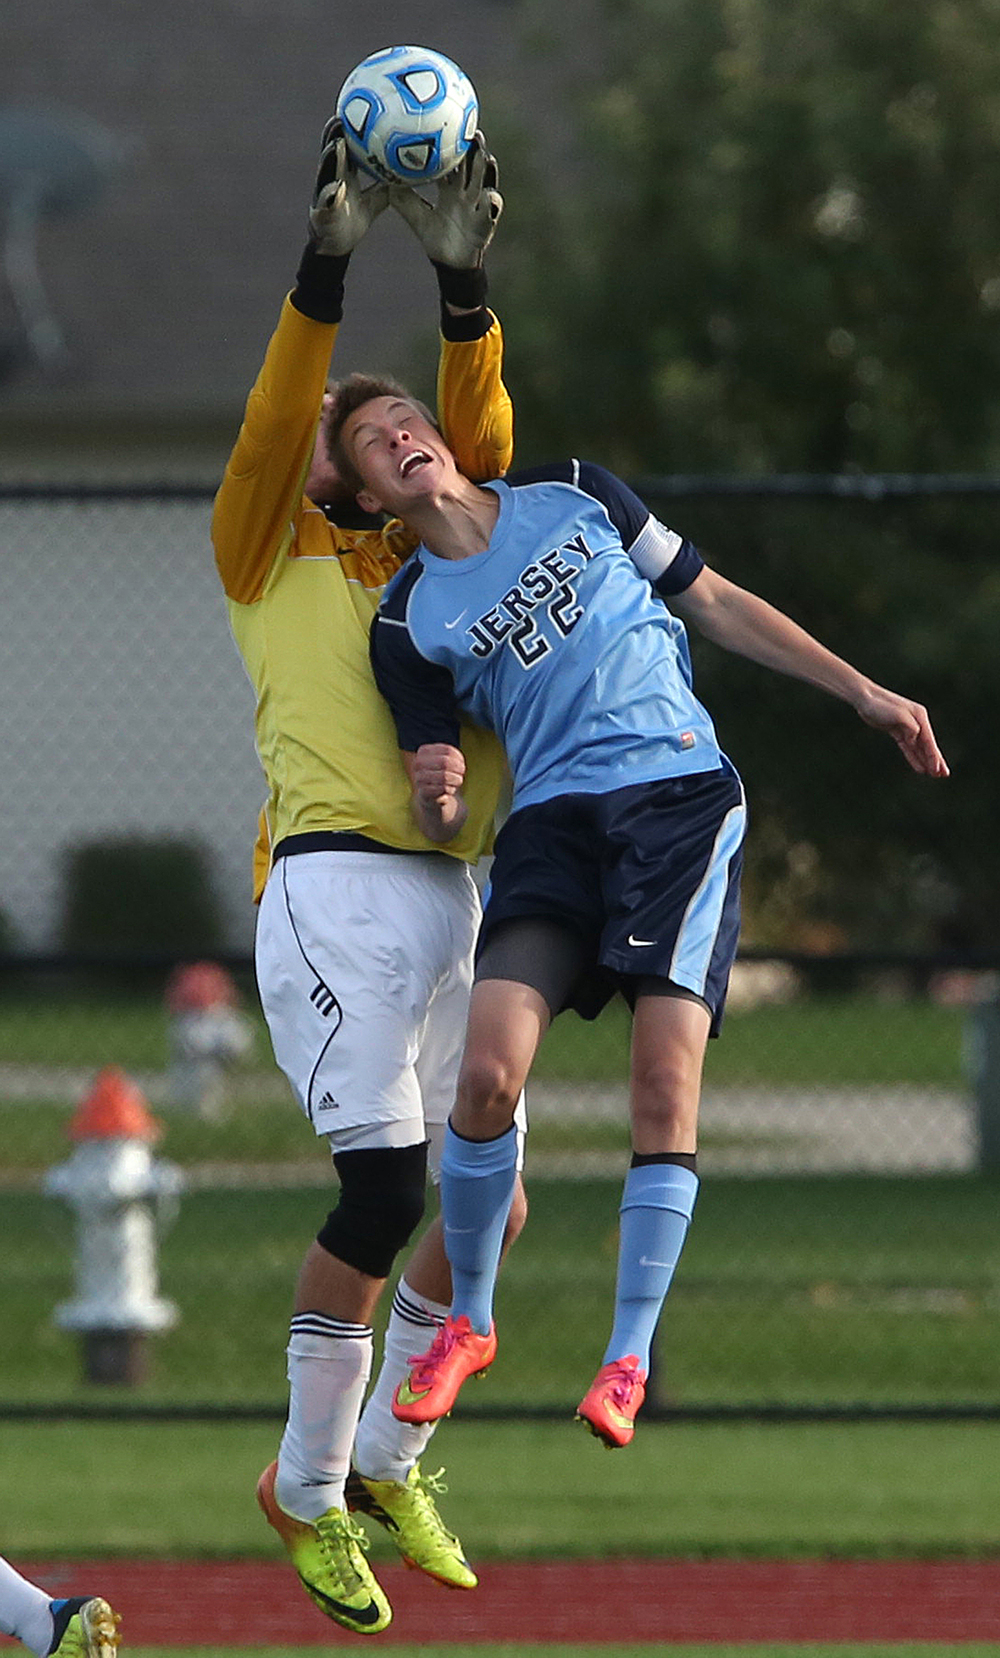 Rockets goal keeper Tyler Schlech makes a save in front of Jerseyville player Chace Tallman. The Rochester High School Rockets defeated the Jerseyville High School Panthers 4-1 at the boys Class 2A Chatham Glenwood Sectional soccer tournament at Glenwood High School on Tuesday, Oct. 28, 2014. David Spencer/The State Journal-Register